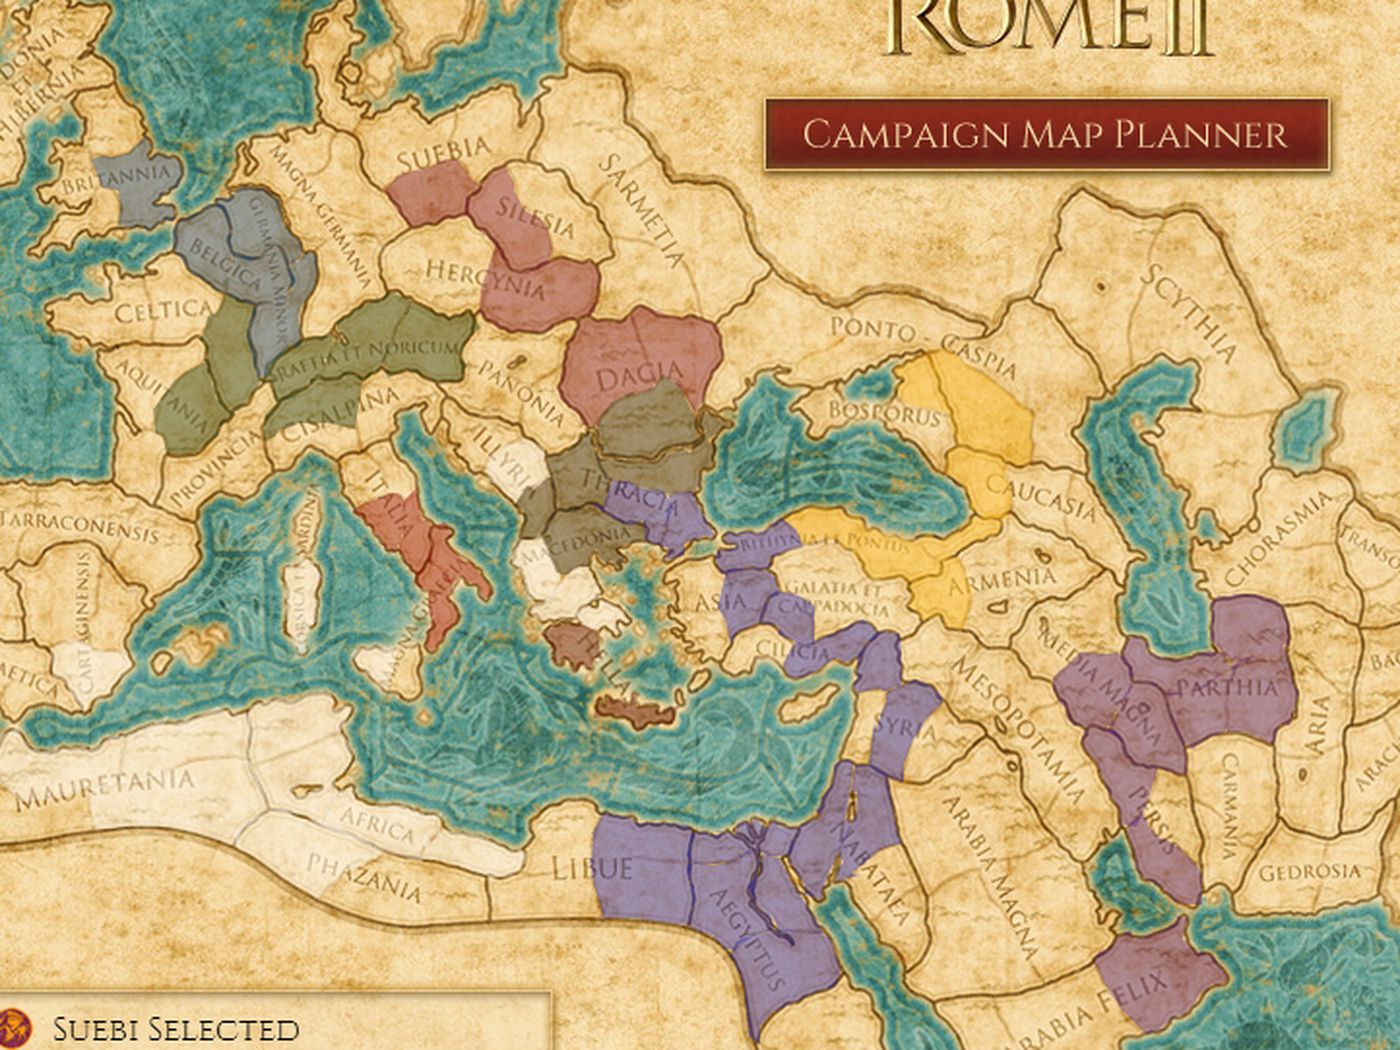 Plan your conquest with Total War: Rome 2 interactive map - Polygon